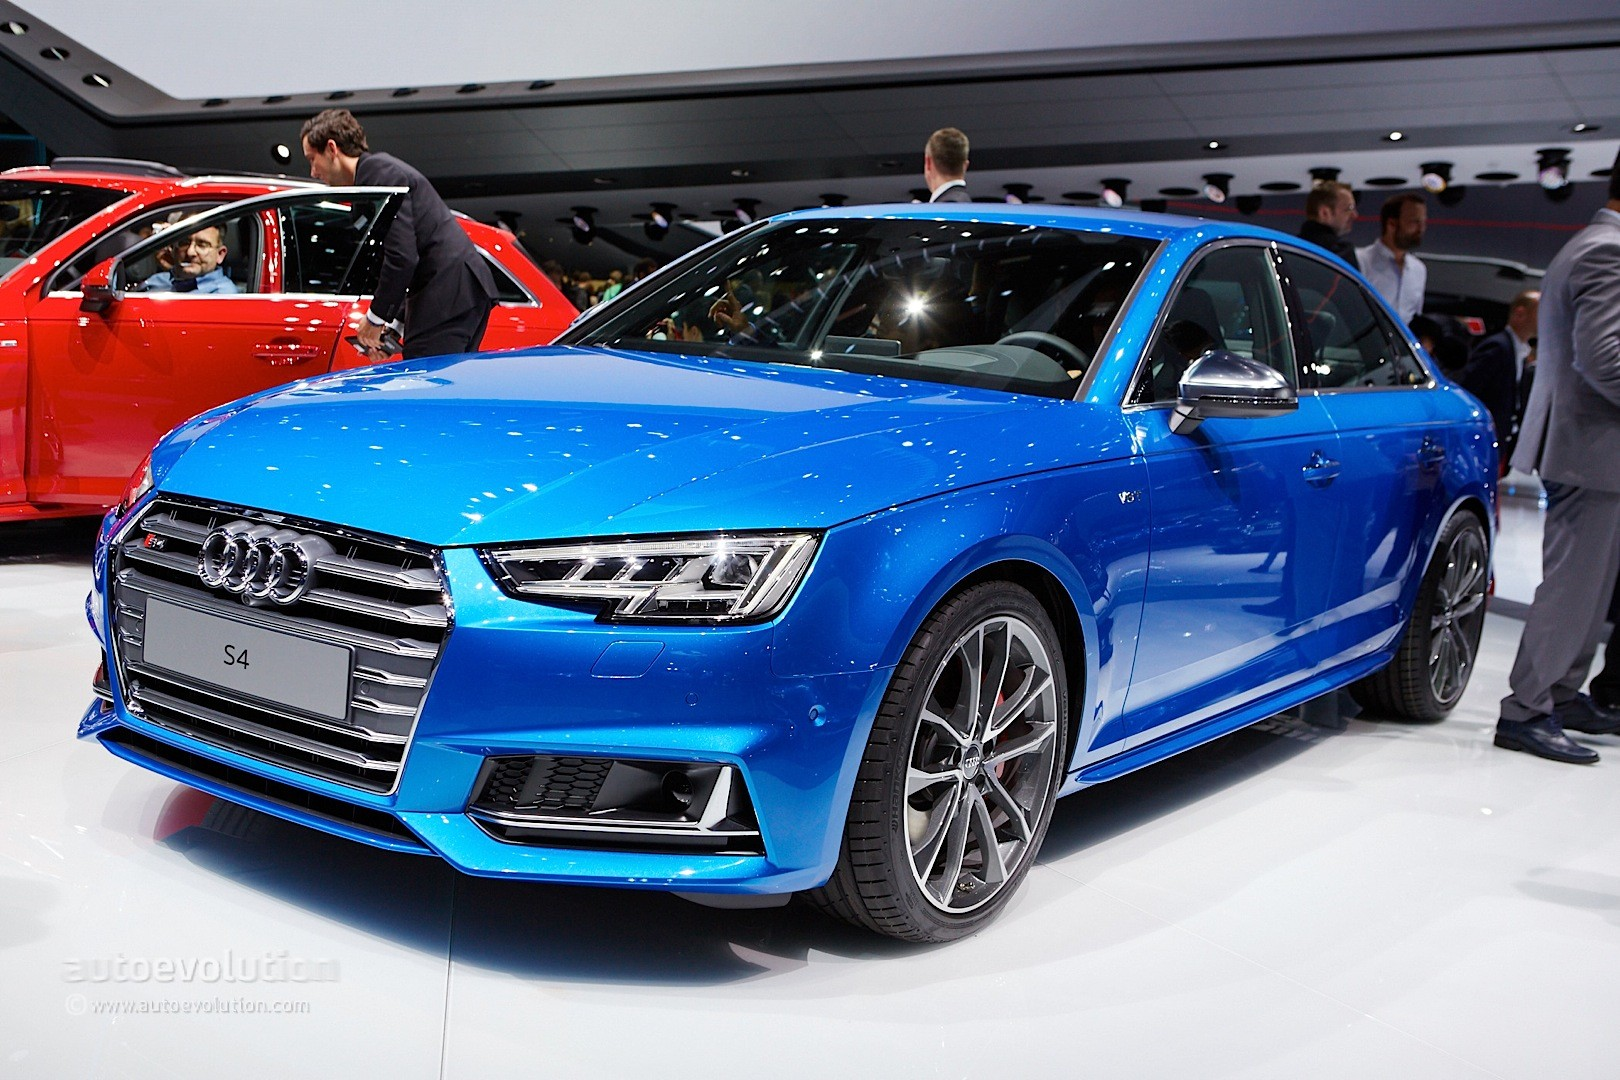 Audi S Specs And Pricing Announced In The US To In - 2018 audi a4 s line specs